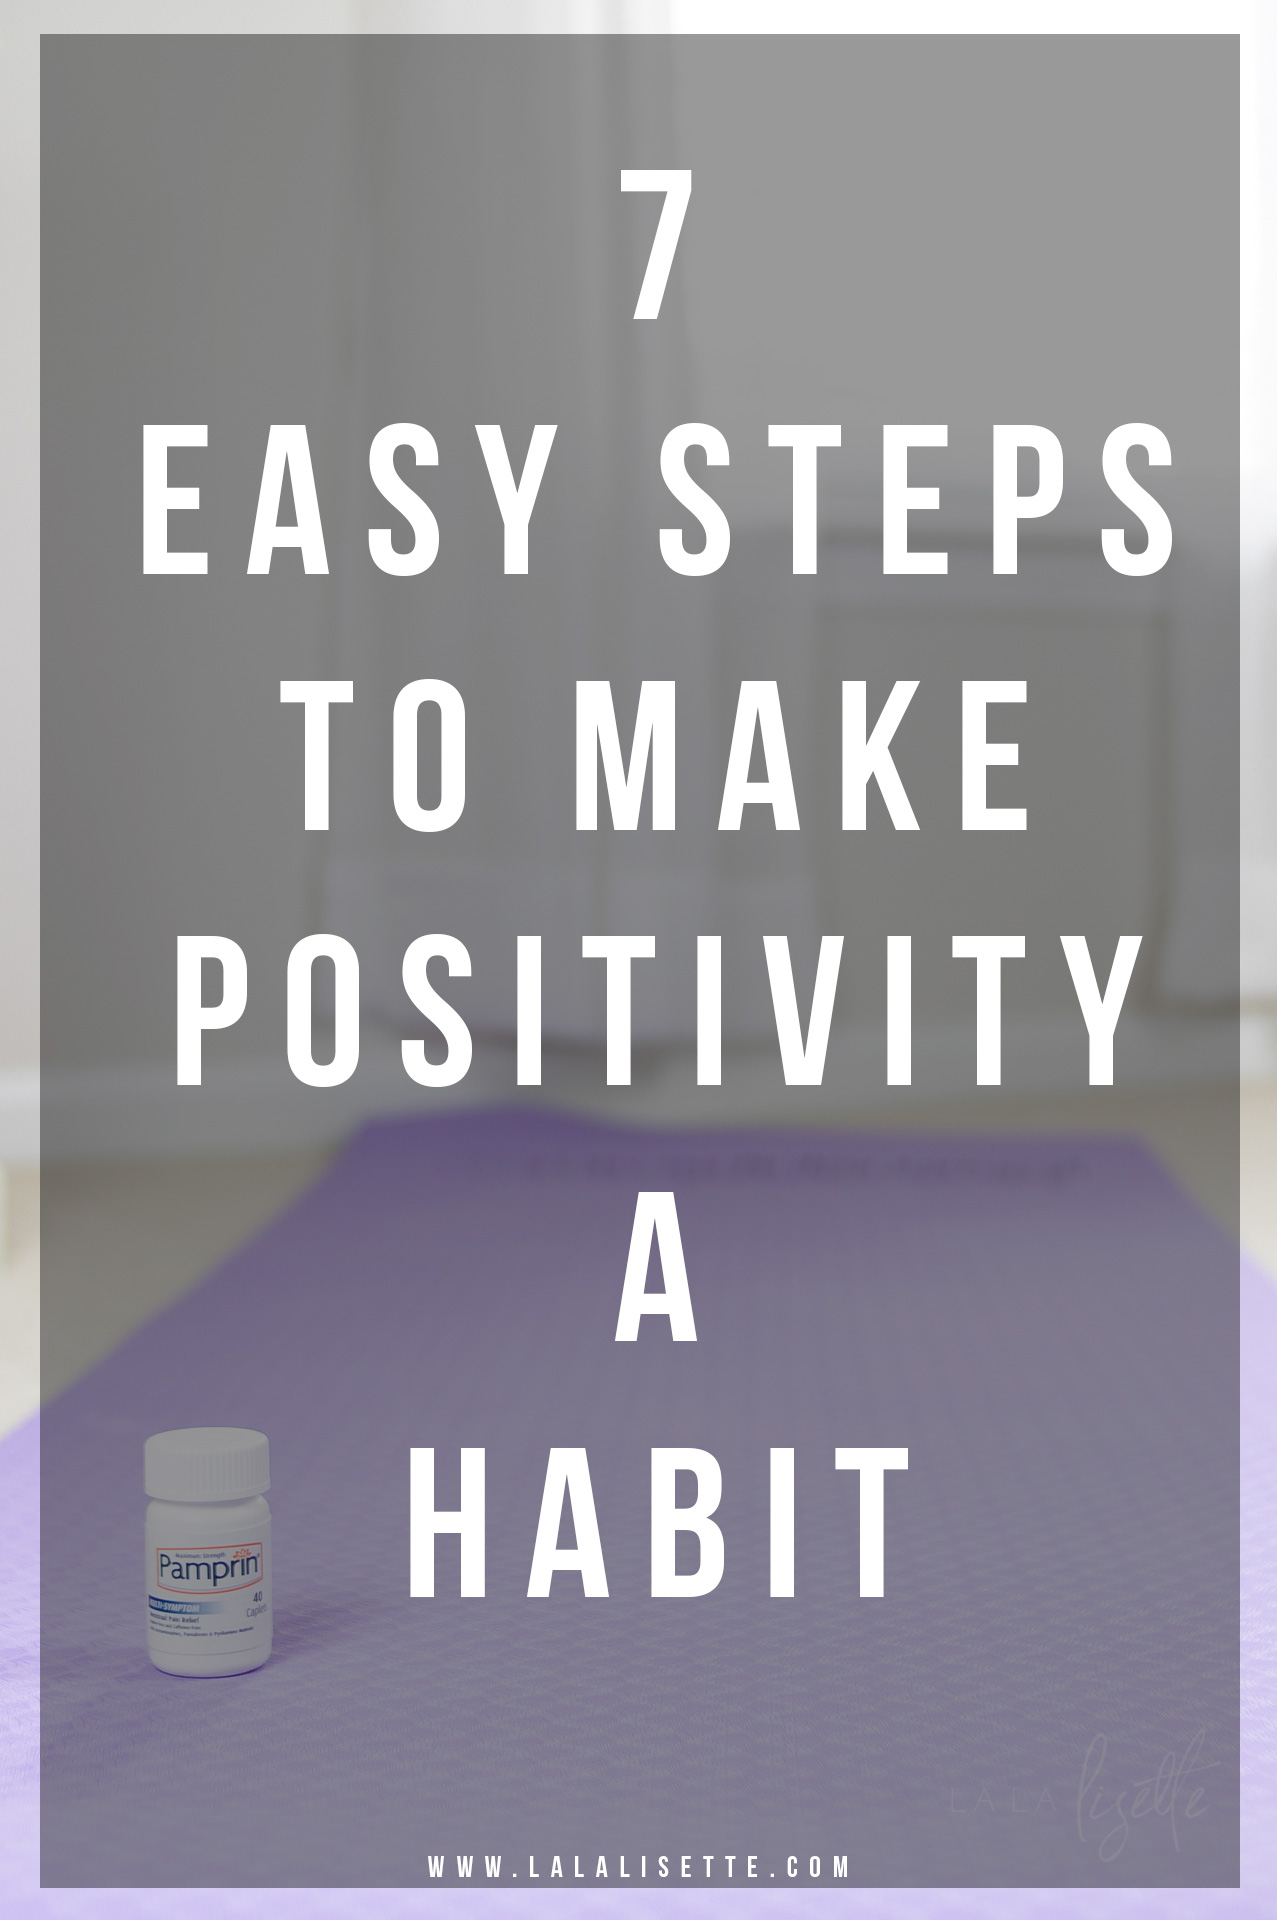 7 Easy Steps To Make Positivity A Habit with Pamprin #ad #BePositivePamprin  Find Pamprin here: http://primp.in/vX3D2Bsq5u